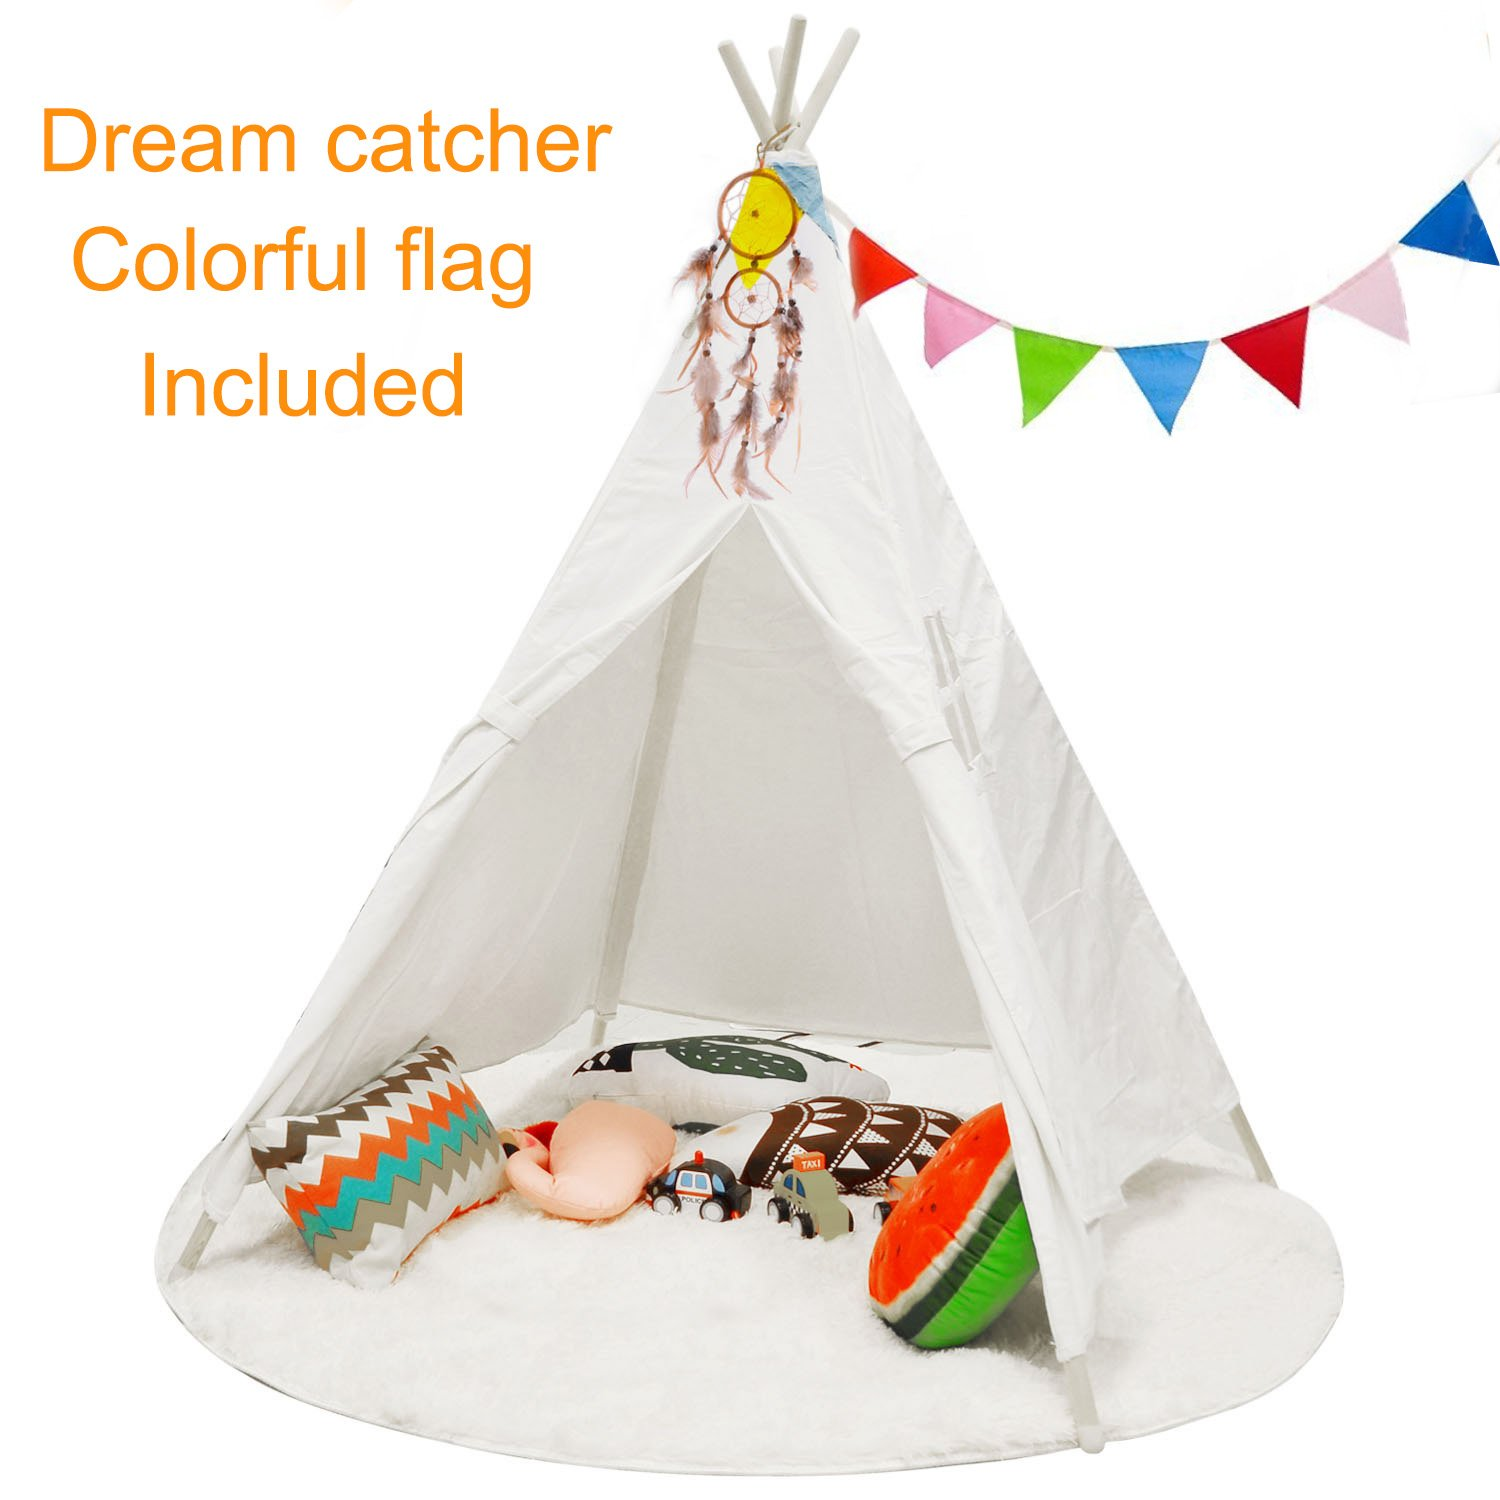 Mland Teepee Play Tent Playhouse for Birthday Gifts/ Party Decor /Kids Furnitures &Room Decor with Carry Case , Including Dream Catcher & Colorful Flag